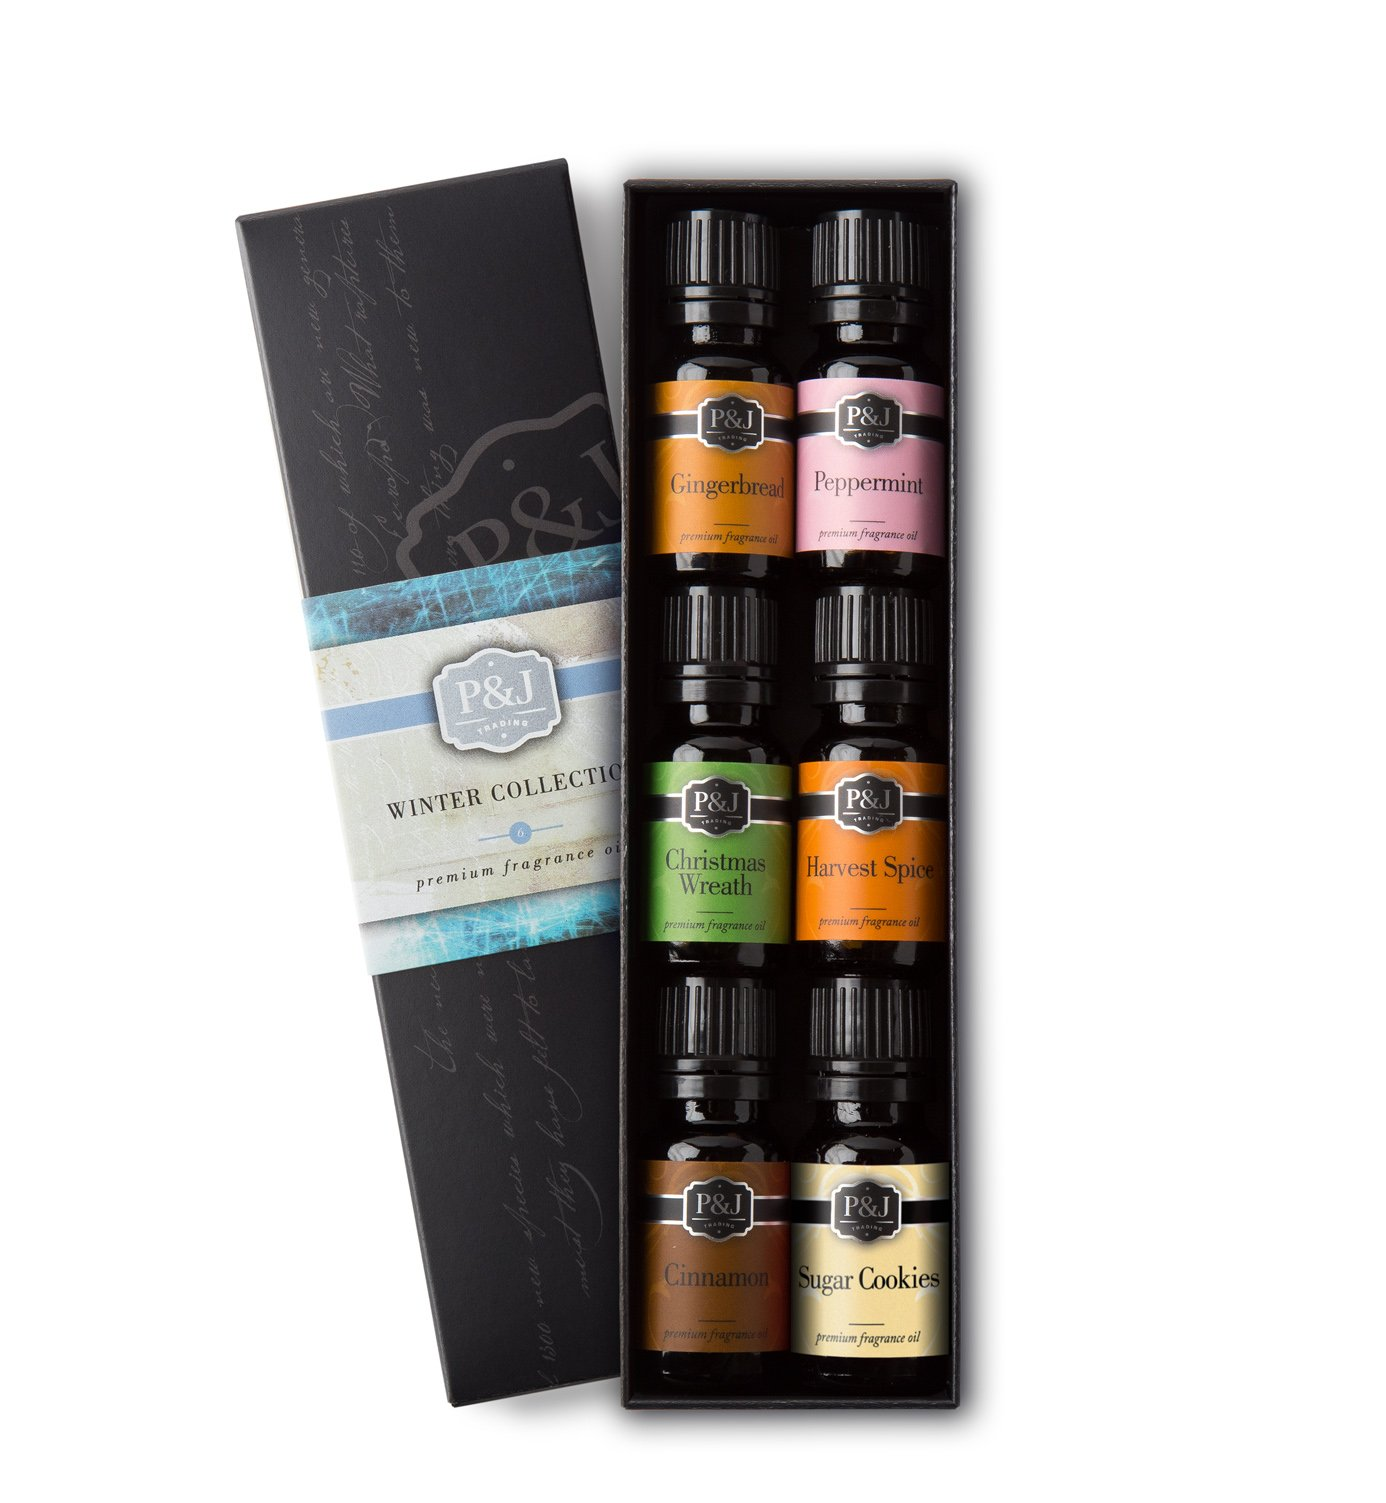 Winter Set of 6 Premium Grade Fragrance Oils - Cinnamon, Gingerbread, Sugar Cookies, Harvest Spice, Peppermint, Christmas Wreath - 10ml by P&J Trading (Image #1)